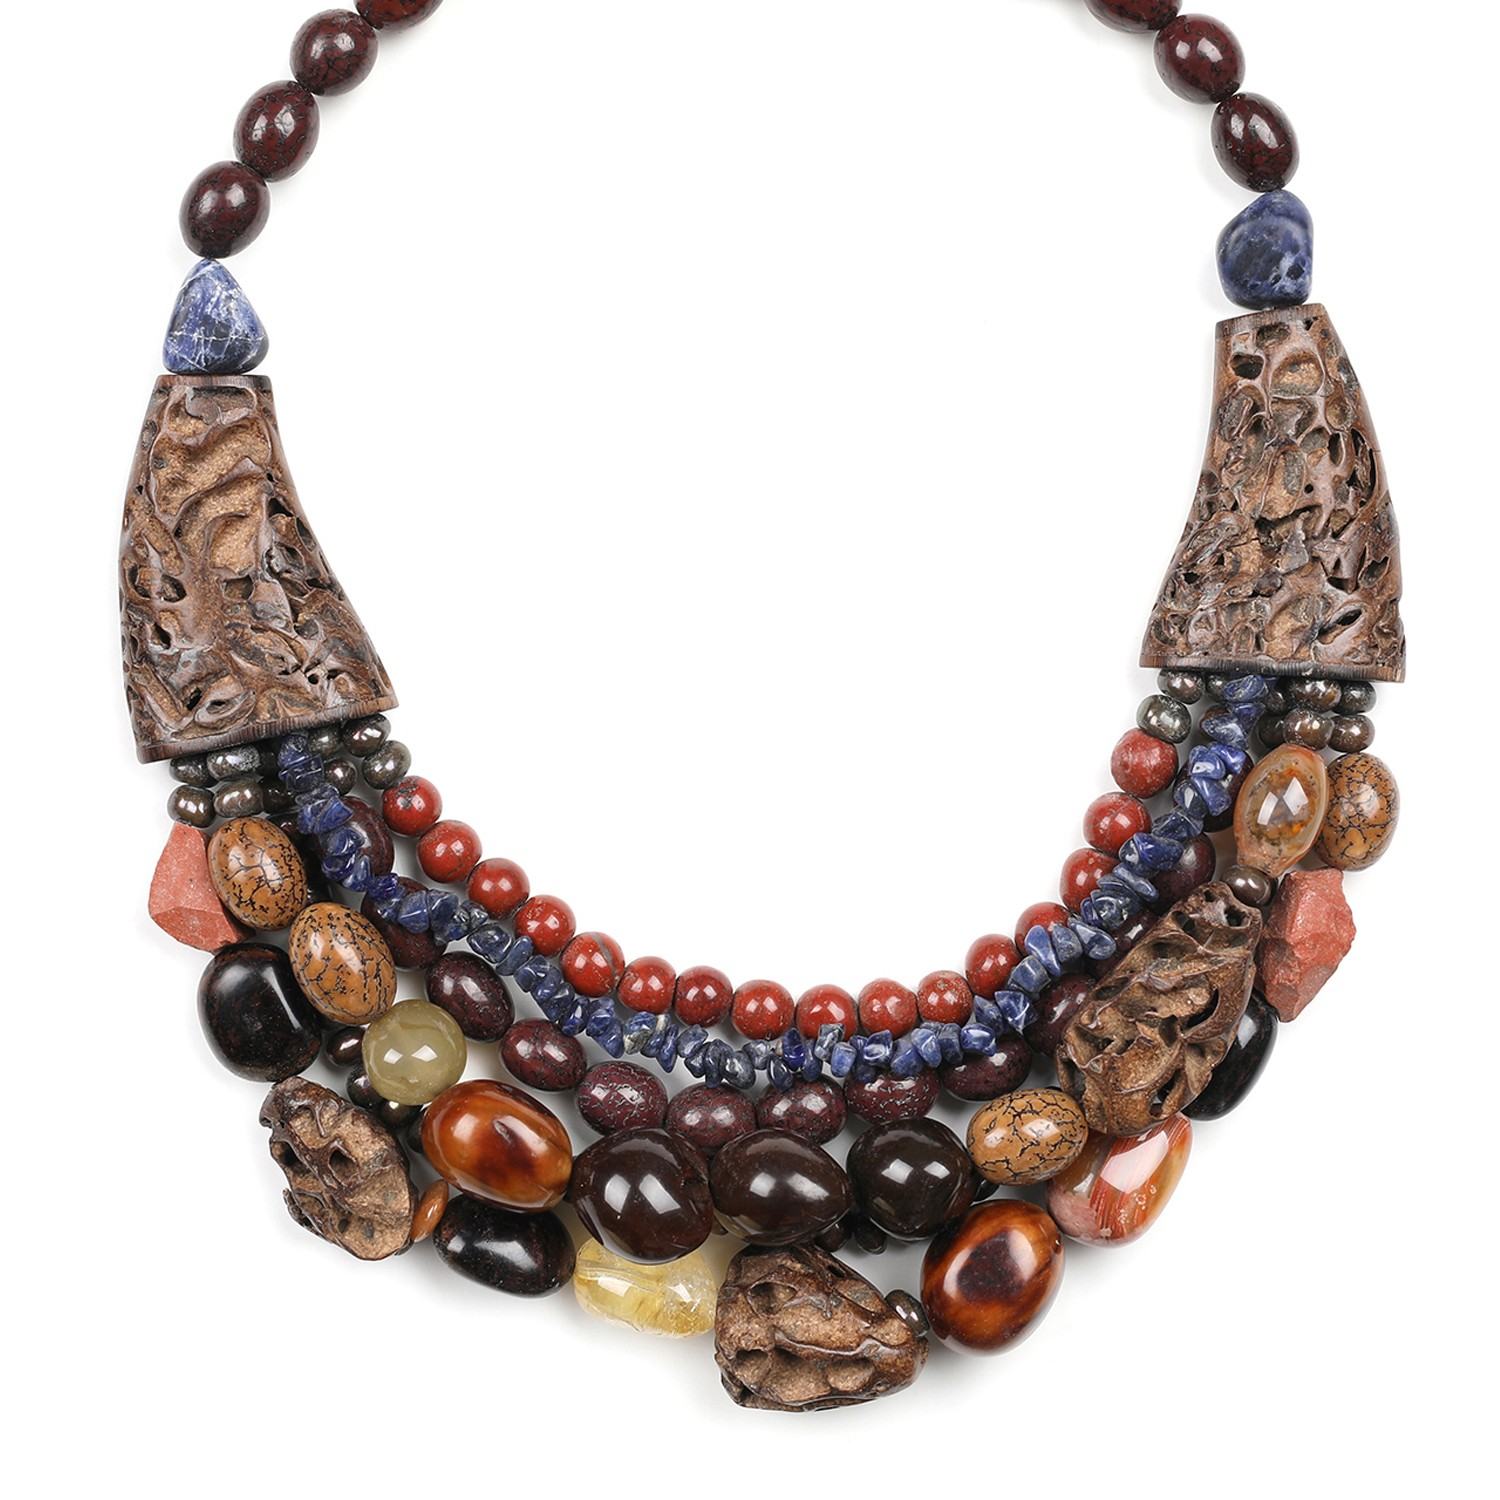 MALAWI THE necklace